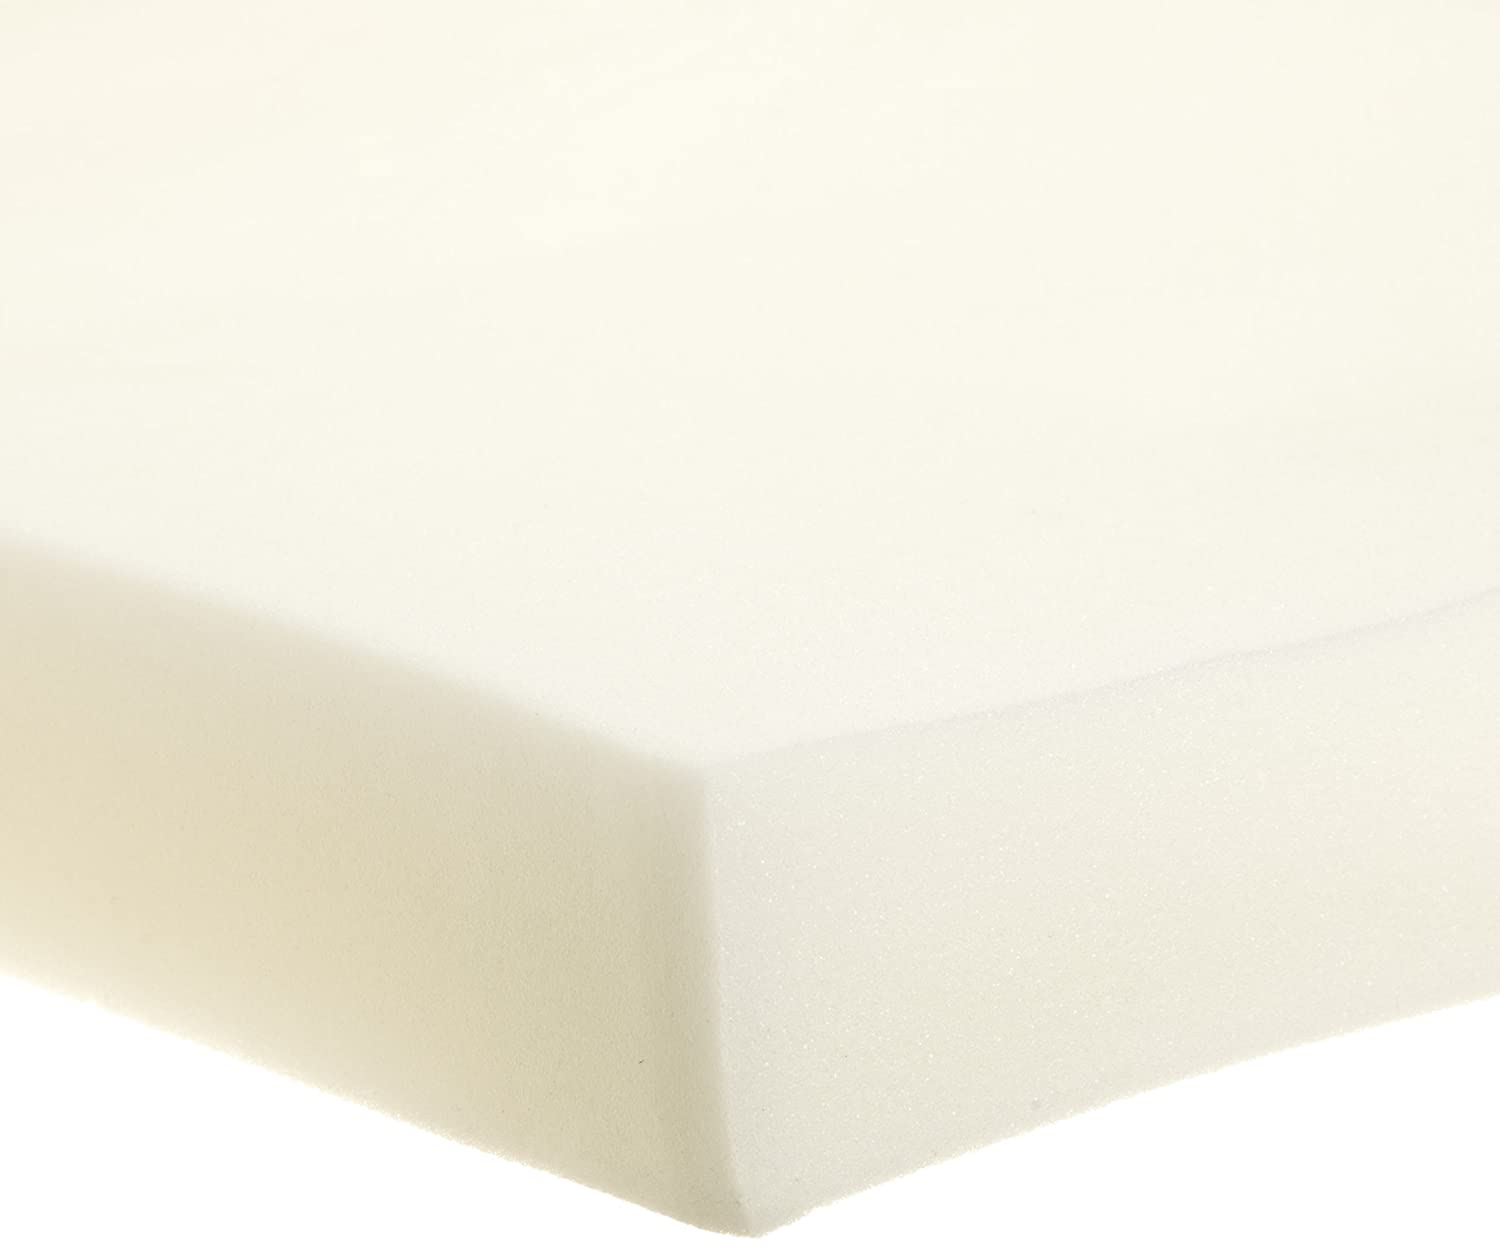 Sleep Better 3-Inch Extra Firm Mattress Topper, Twin